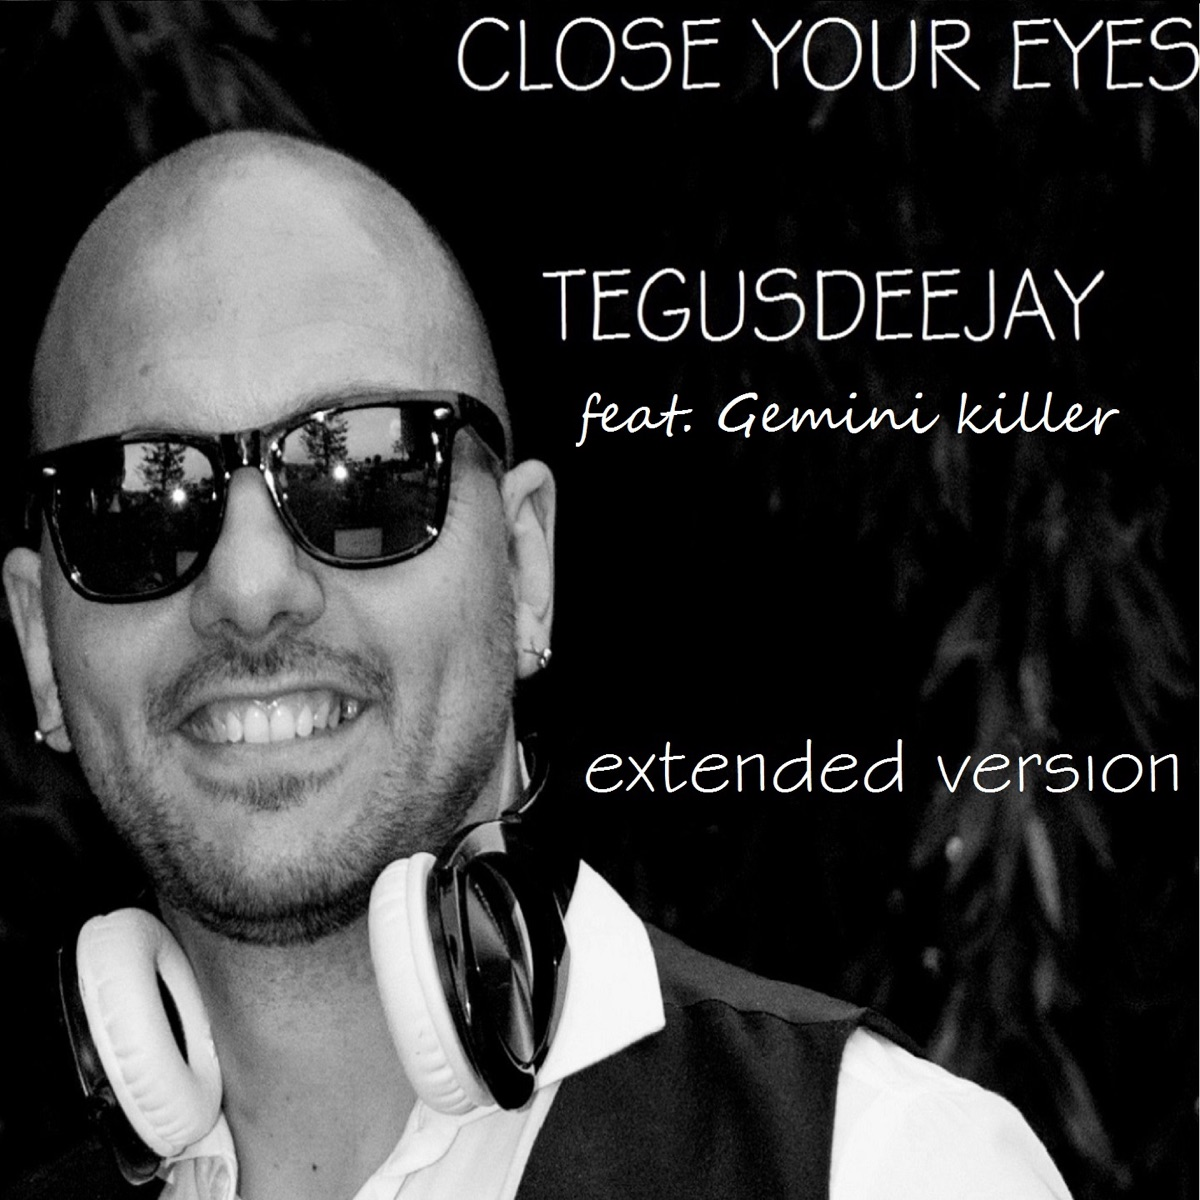 Close Your Eyes Album Cover by TEGUSDEEJAY